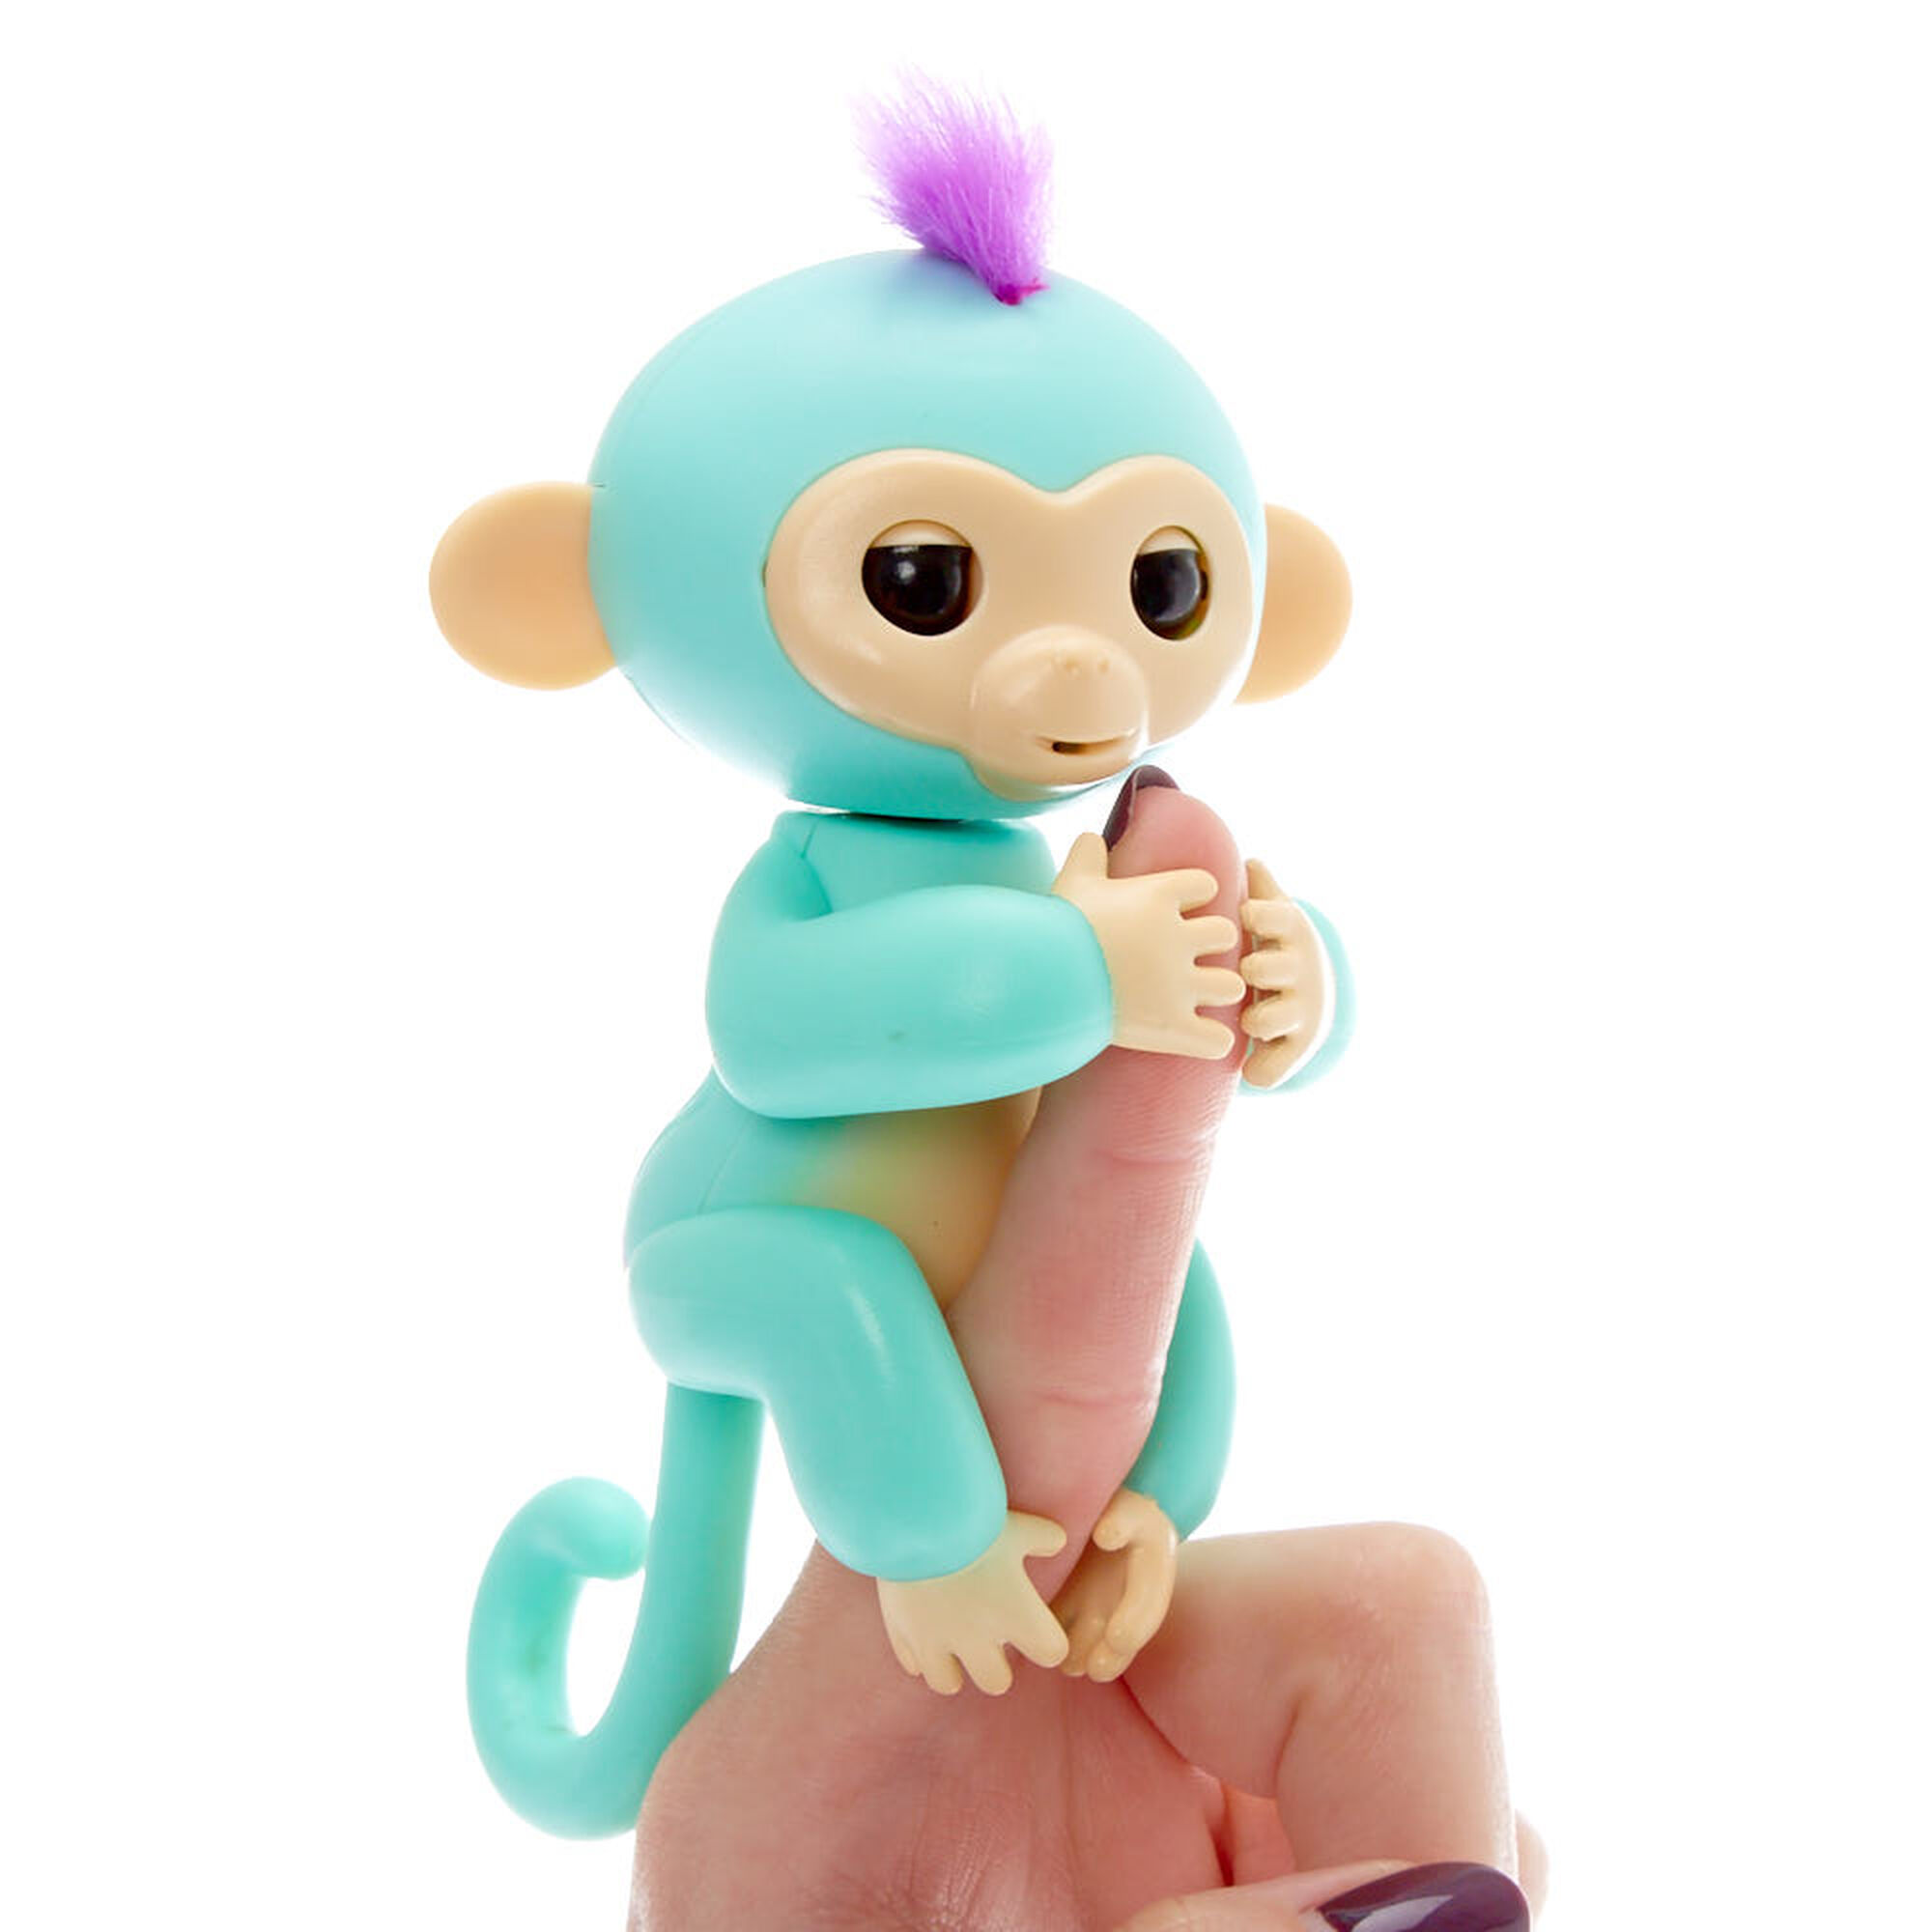 WowWee Fingerlings Interactive Baby Monkey Toy - Zoe Claire s CA